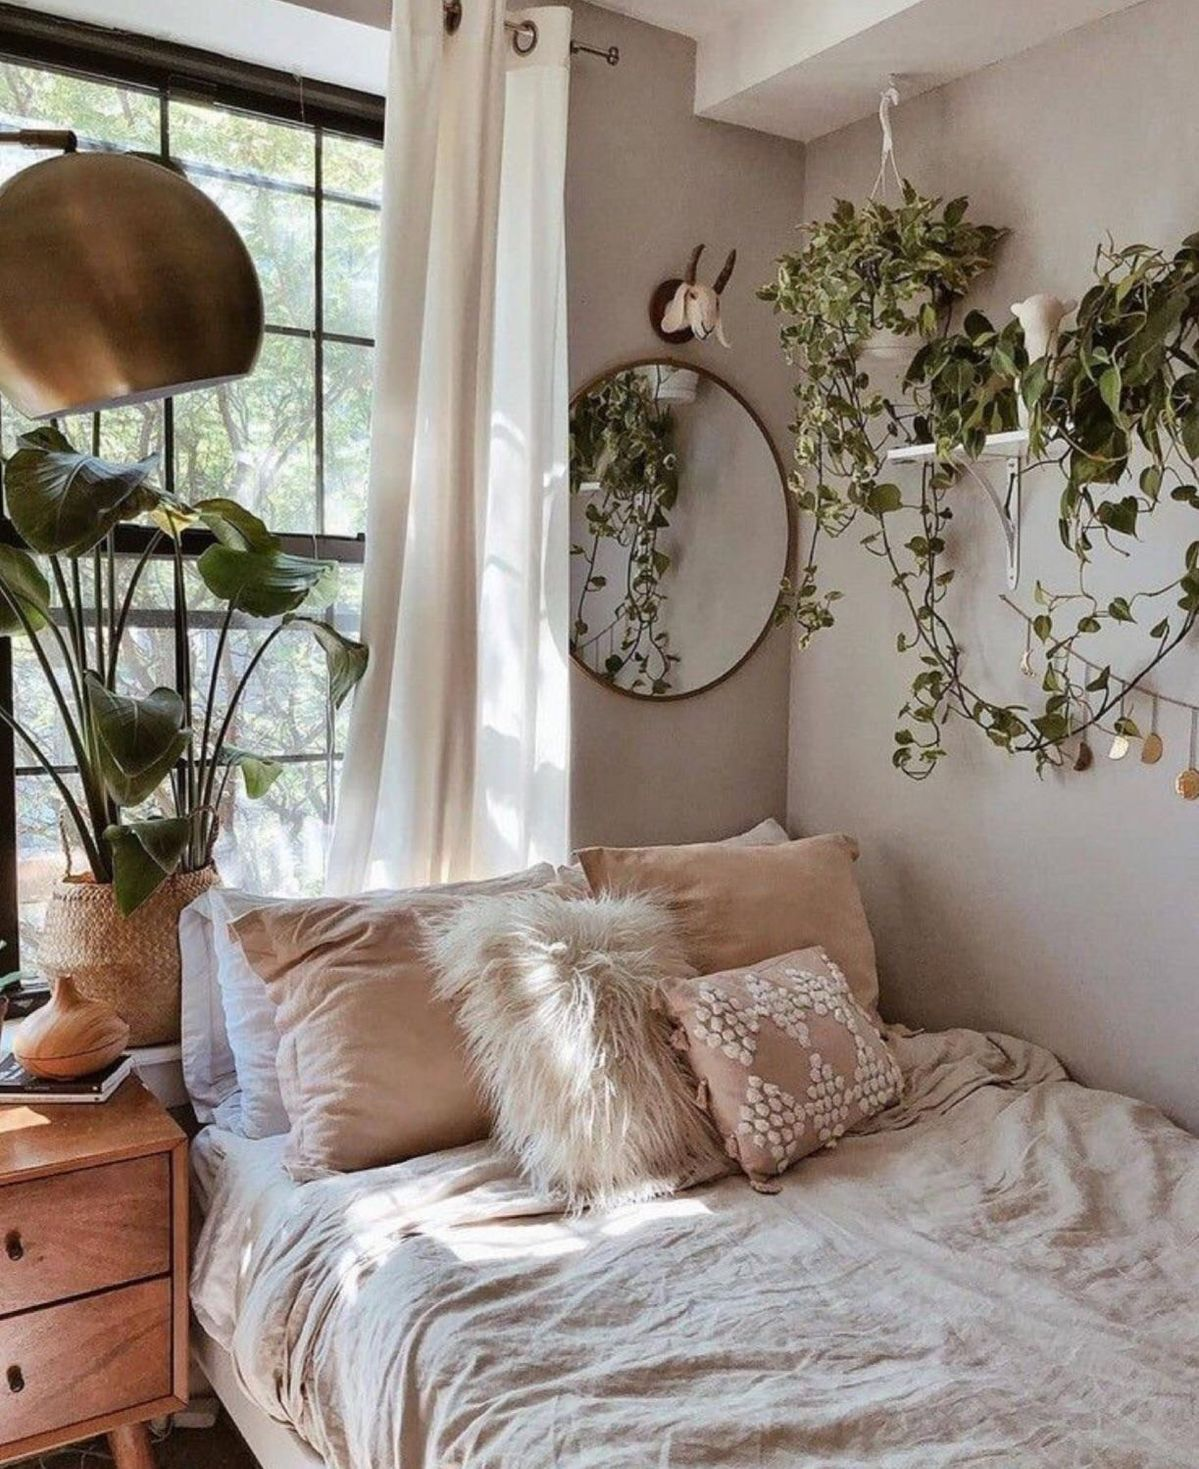 Well lit bedroom and plants.